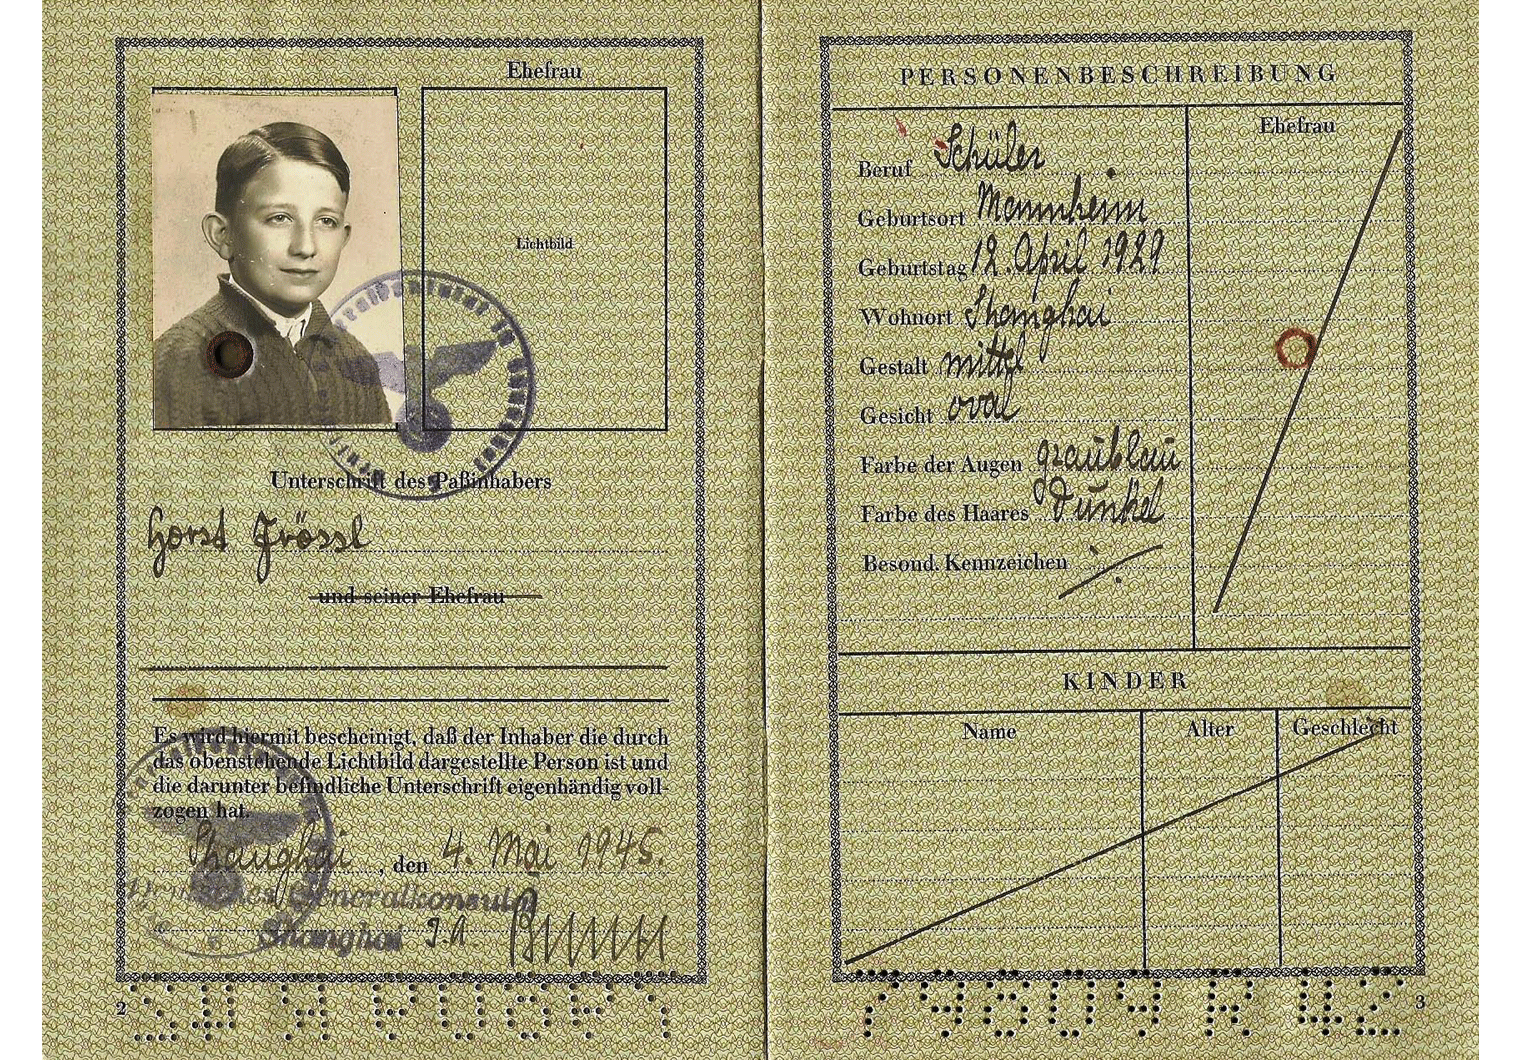 Last German passport 1945